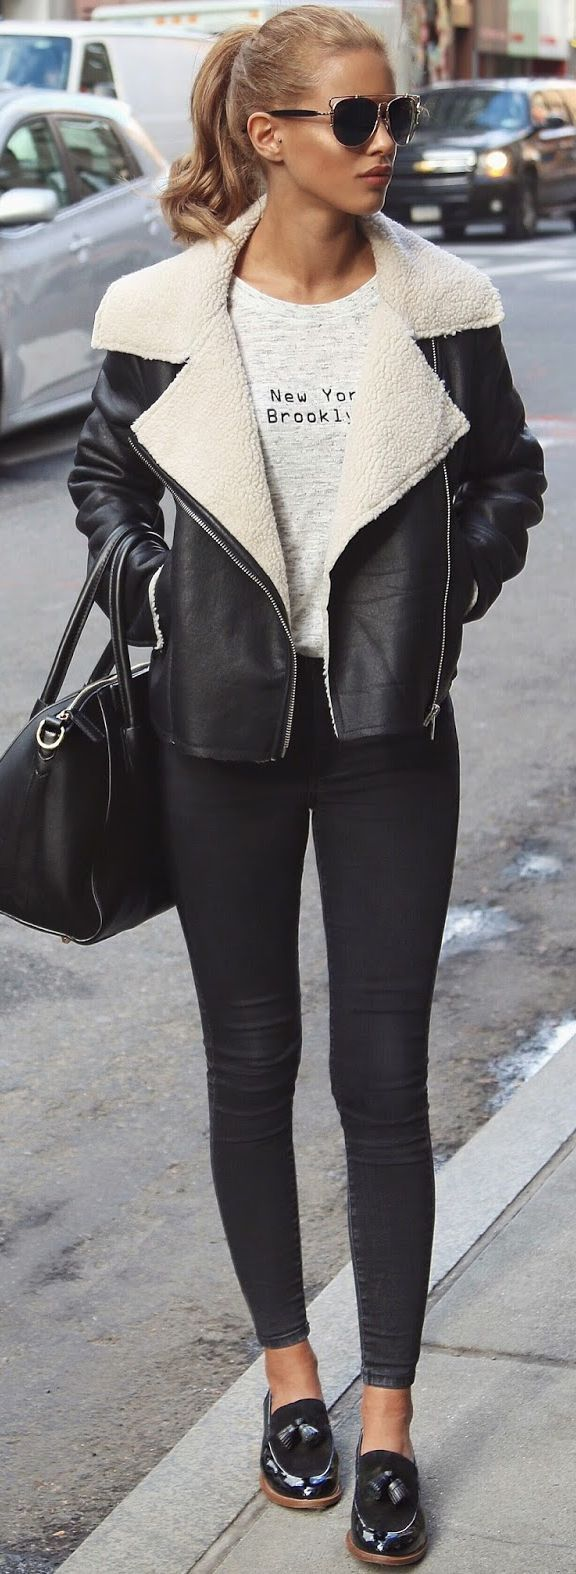 Black And White Shearling Jacket Fall Street Style Inspo #Fashionistas